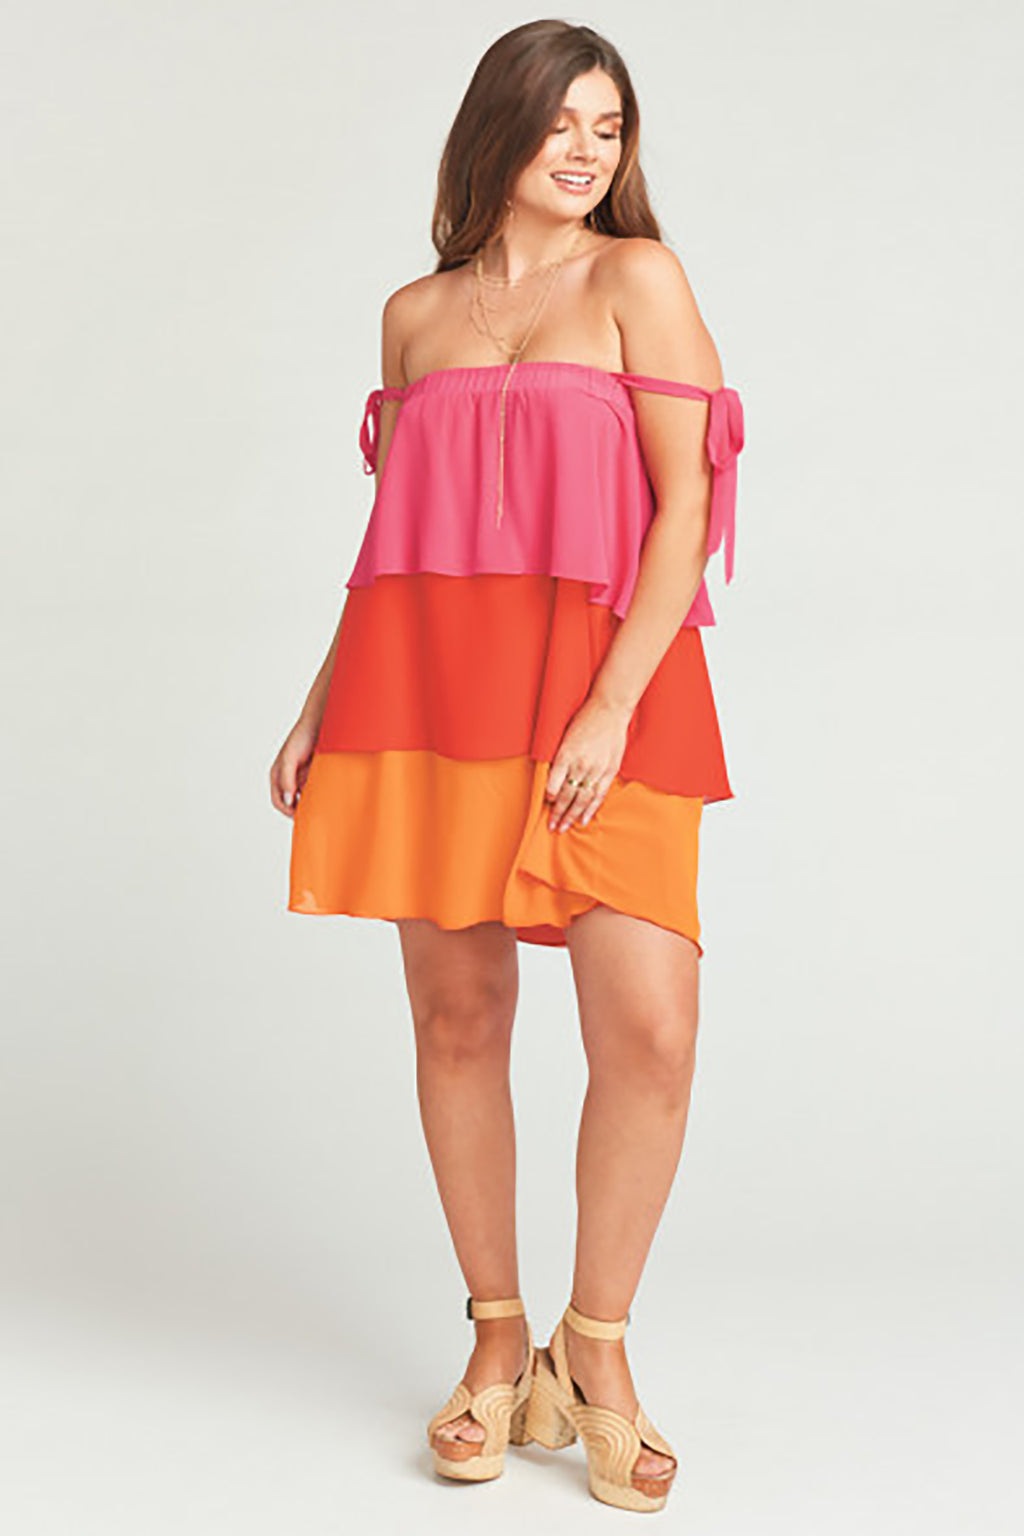 Gabriela Convertible Skirt Dress - Sunset Colorblock